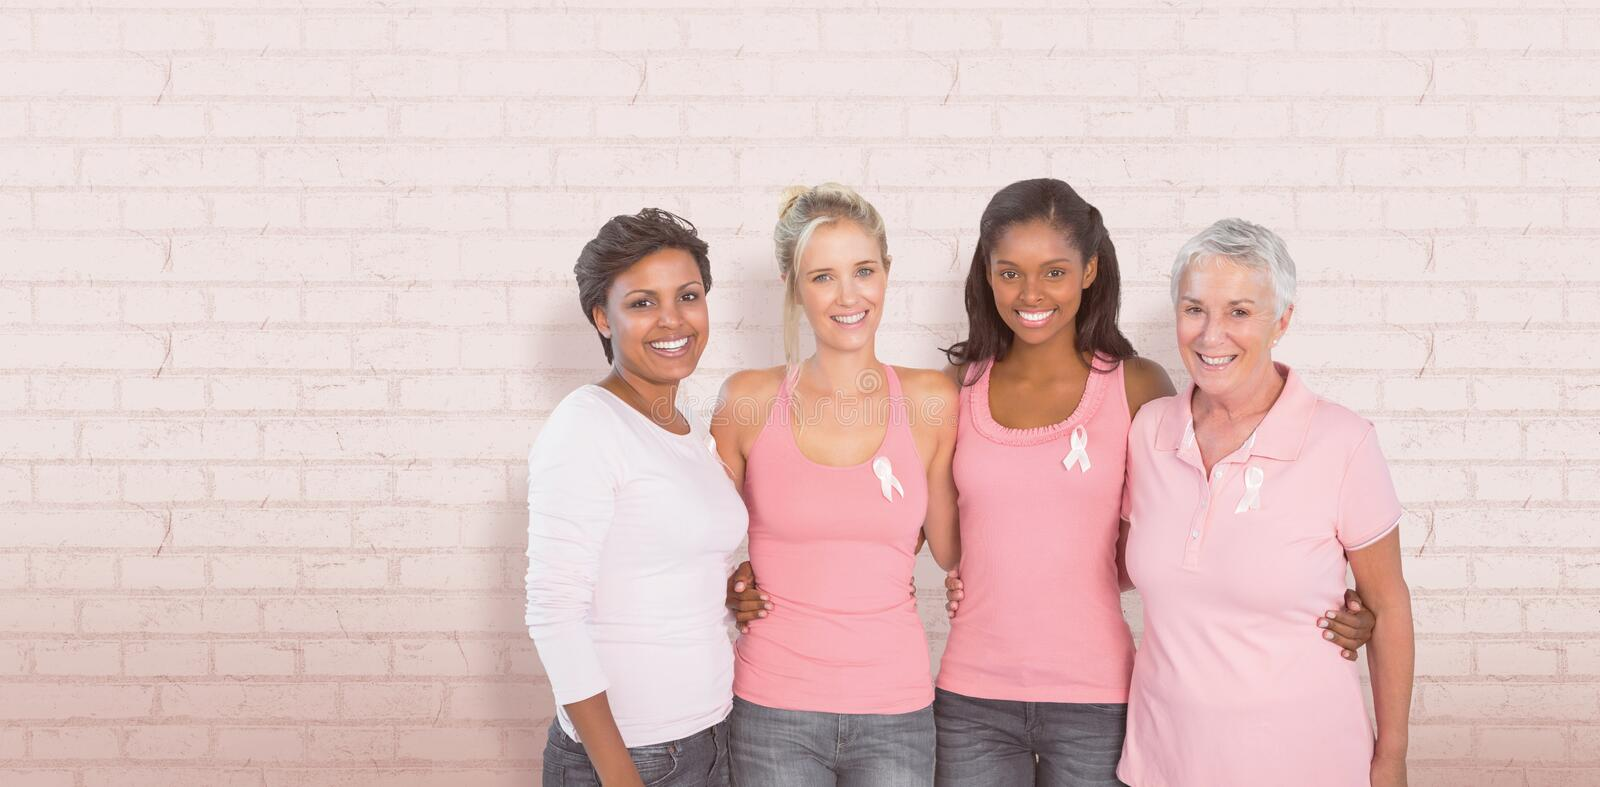 Composite image of portrait of happy women supporting breast cancer social issue. Portrait of happy women supporting breast cancer social issue against white royalty free stock image